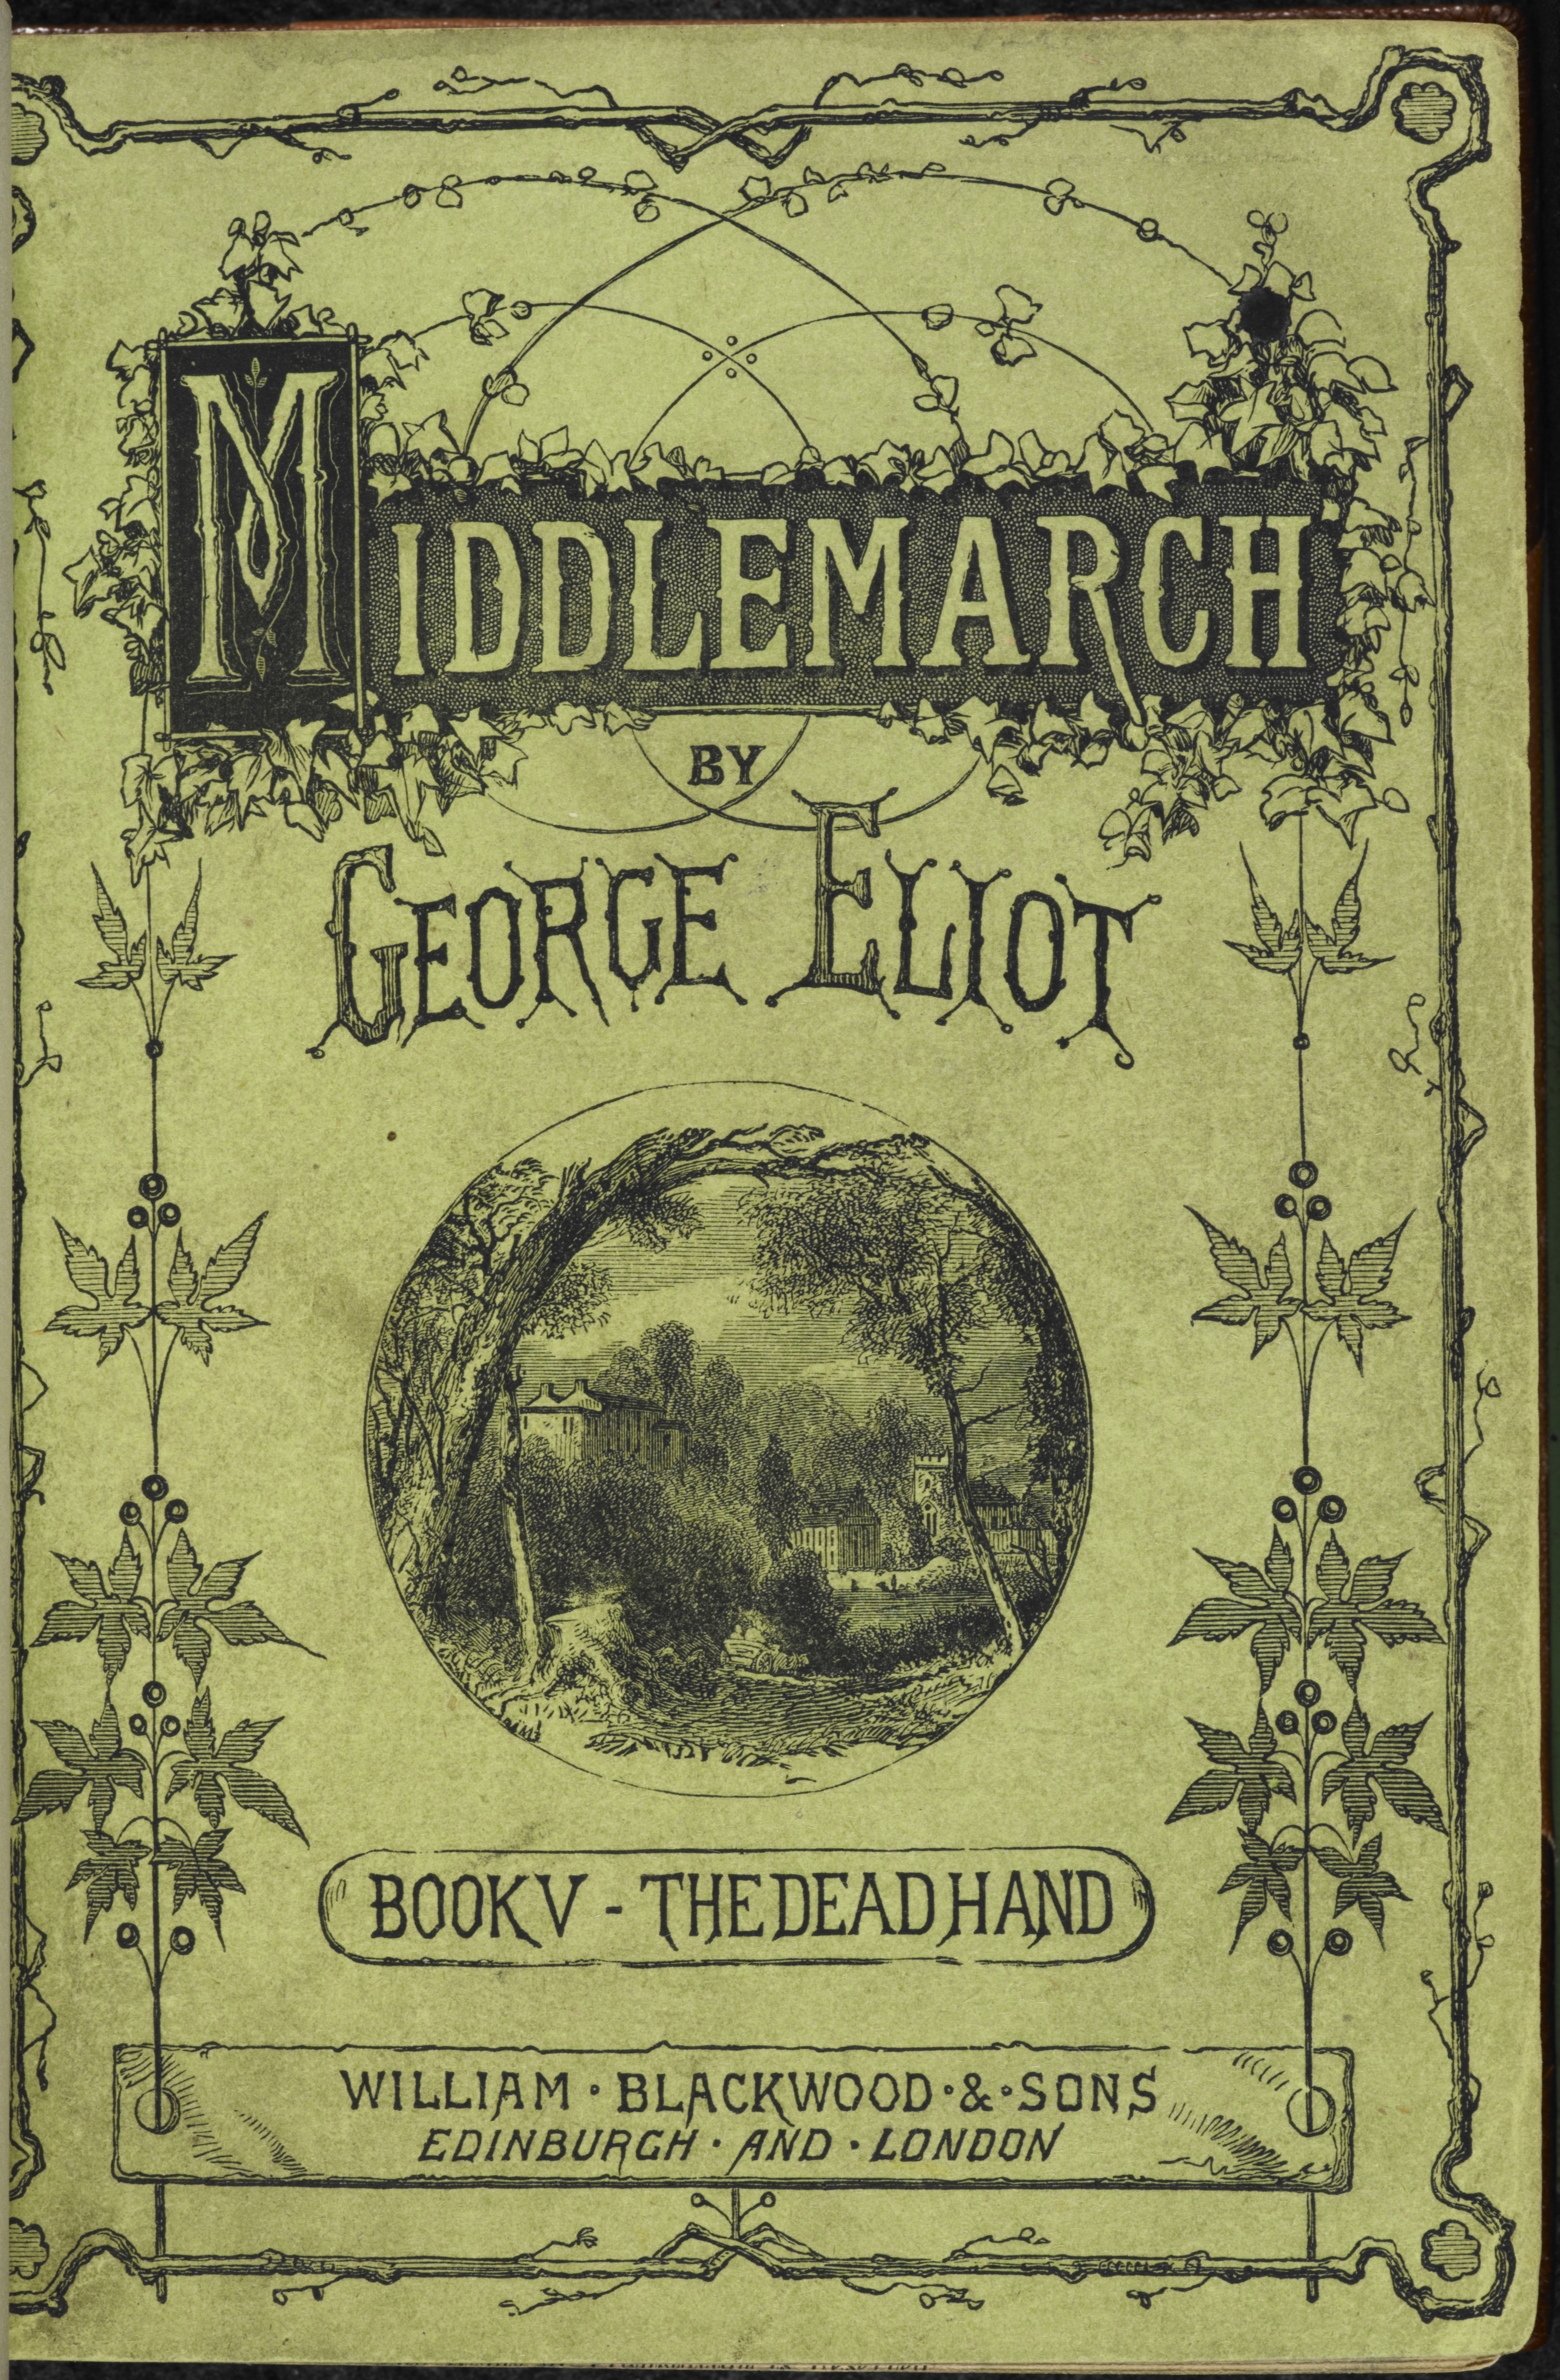 Illustrated title page from an 1871 edition of Middlemarch